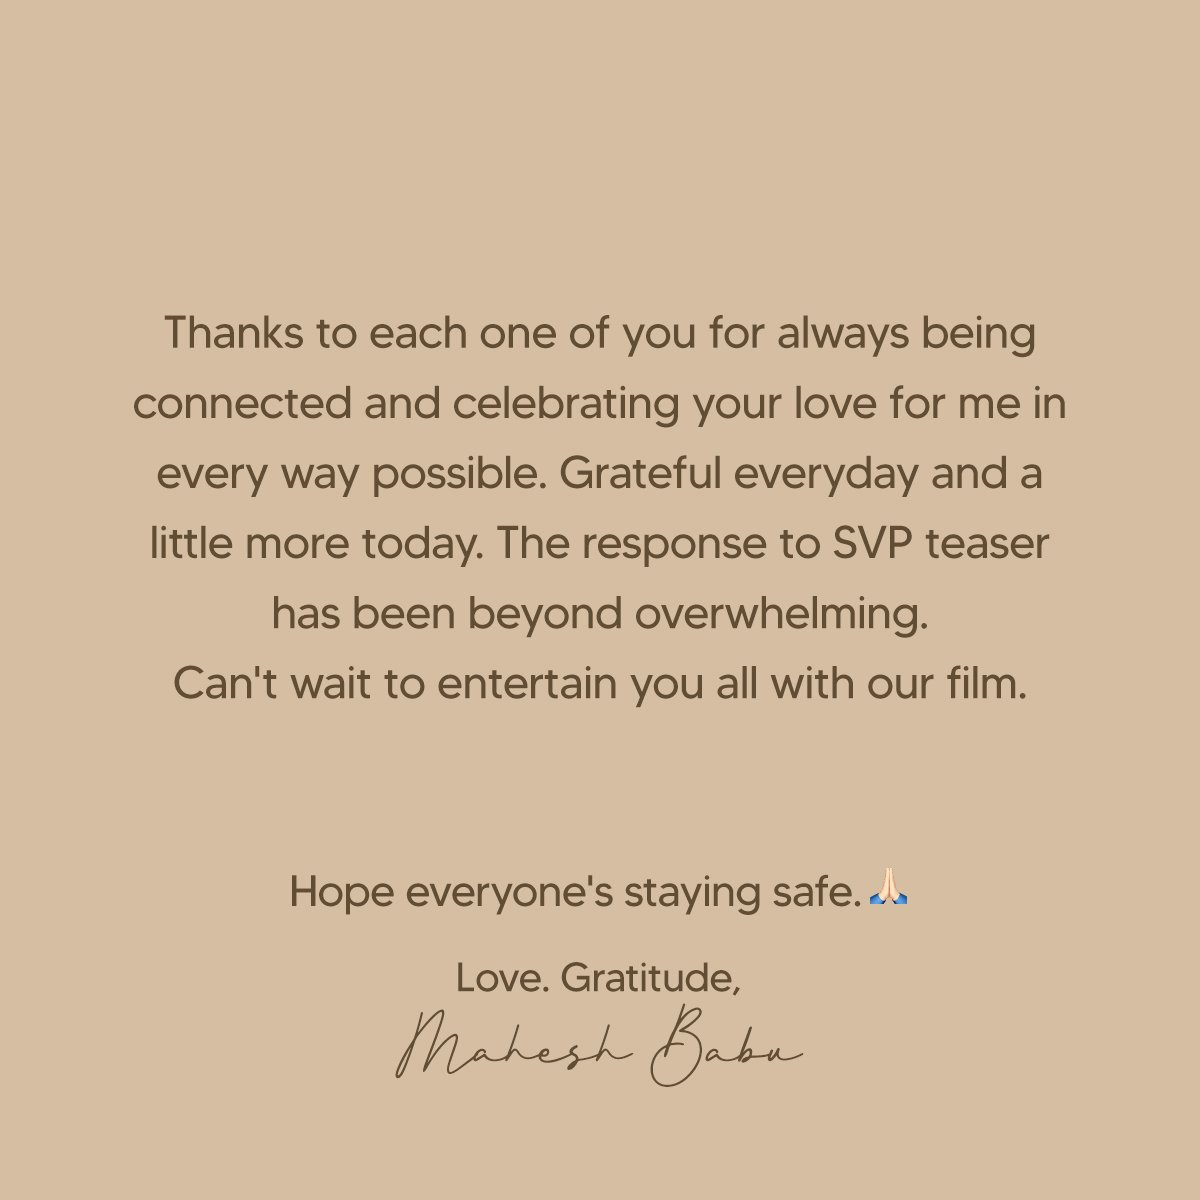 Humbled by all the love and wishes! 🙏 https://t.co/y018FiCgK8